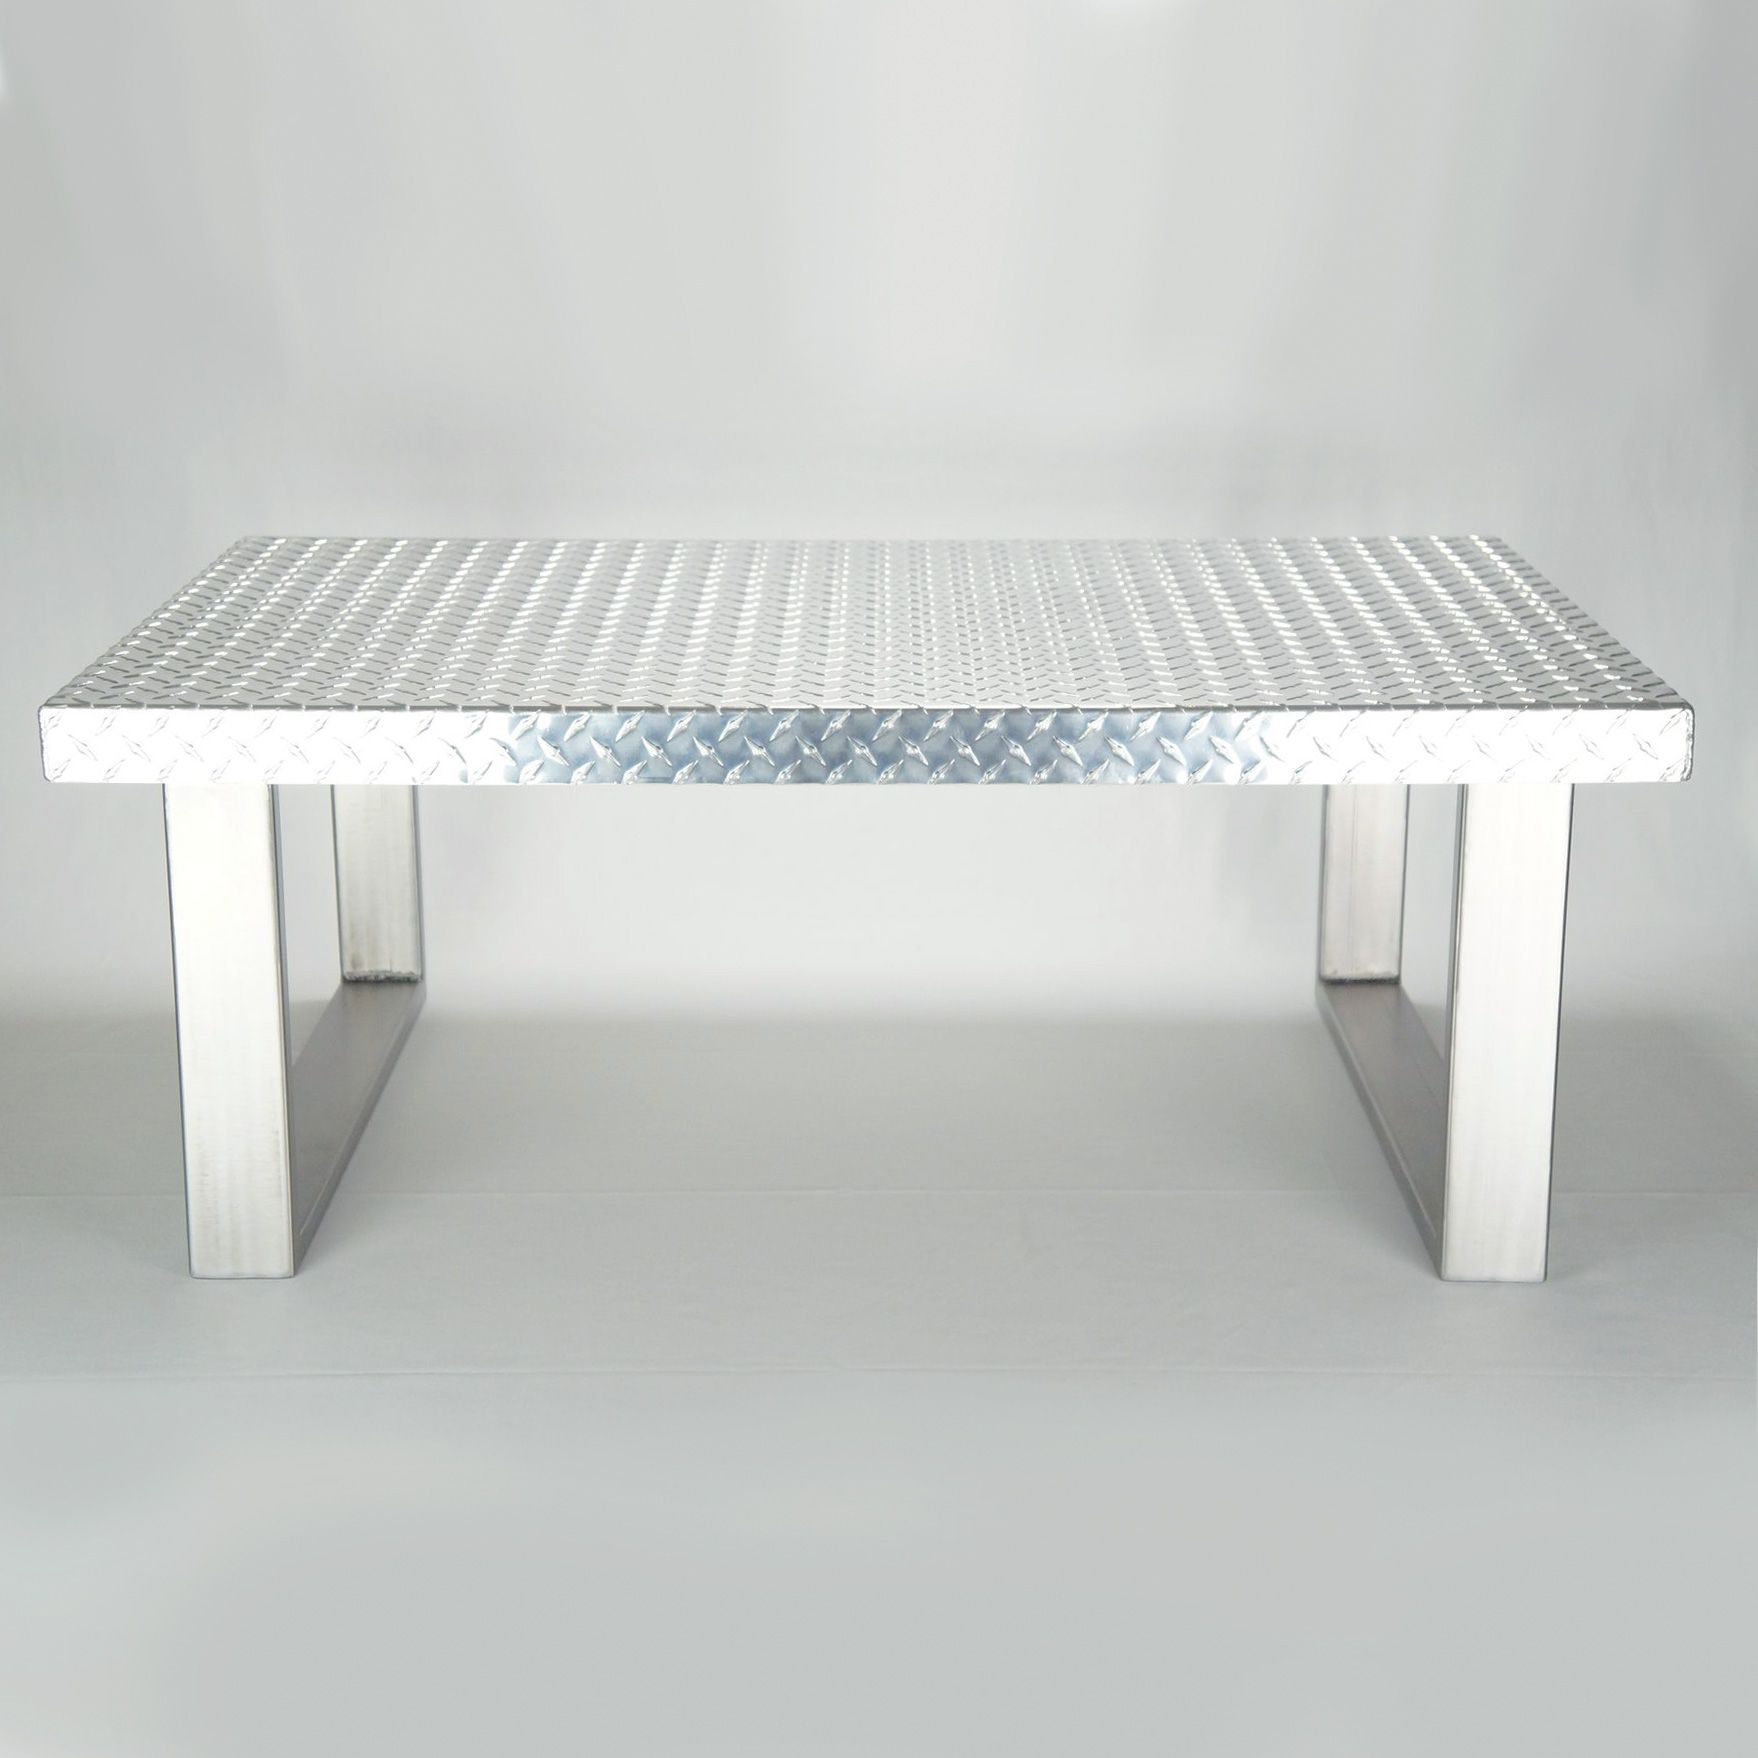 Industrial coffee tables custommade industrial diamond plate metal coffee table geotapseo Choice Image